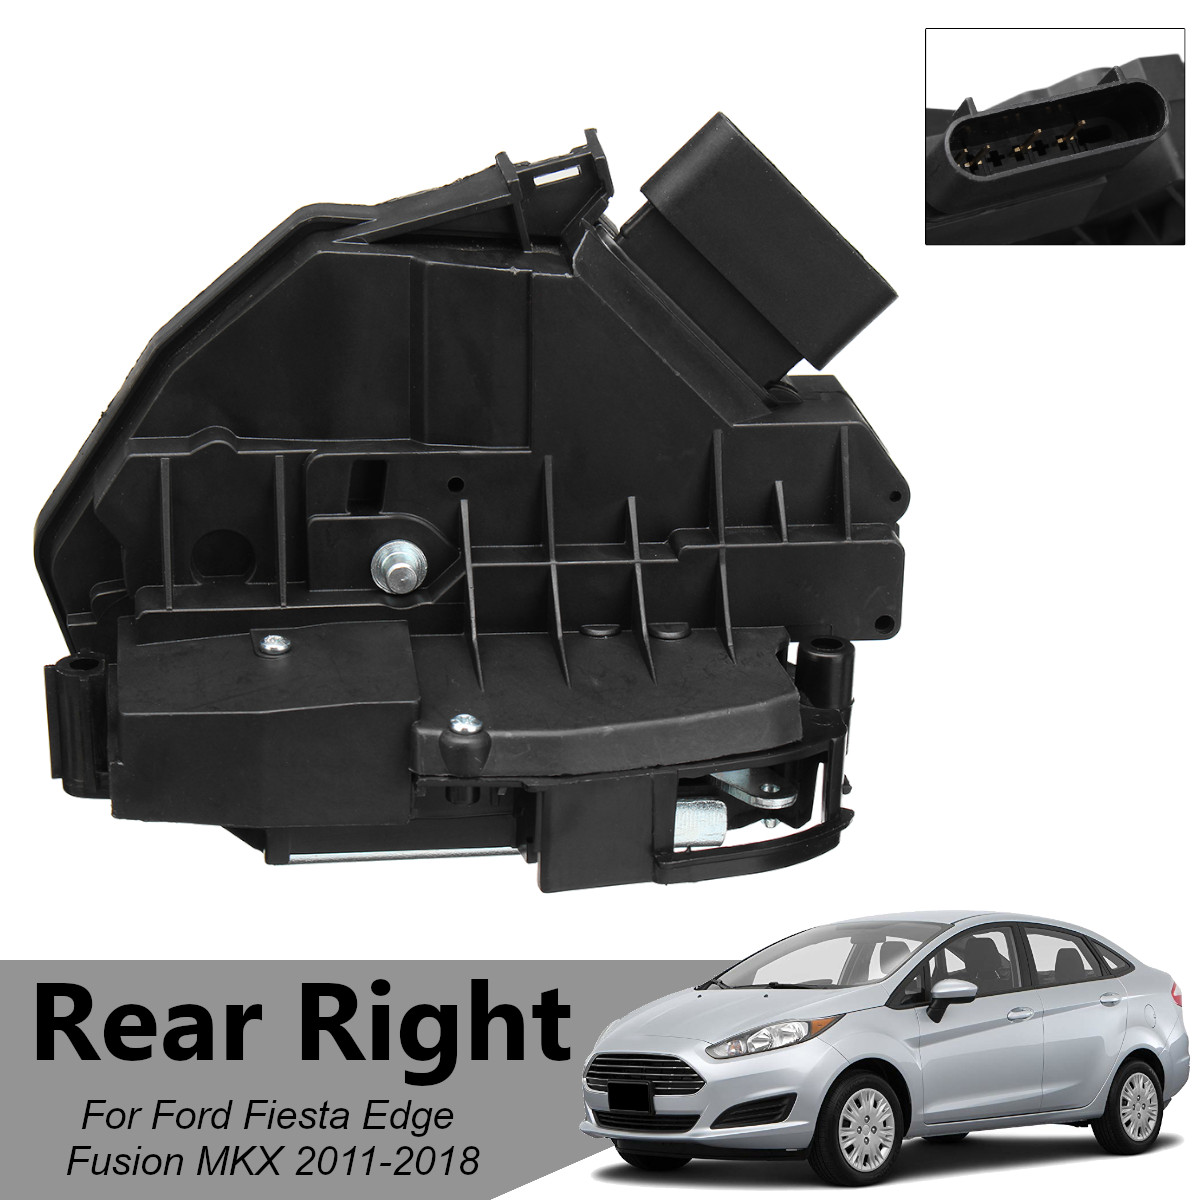 Rear Right Passenger Door Lock Latch Actuator For Ford Fusion Fiesta Edge MKX